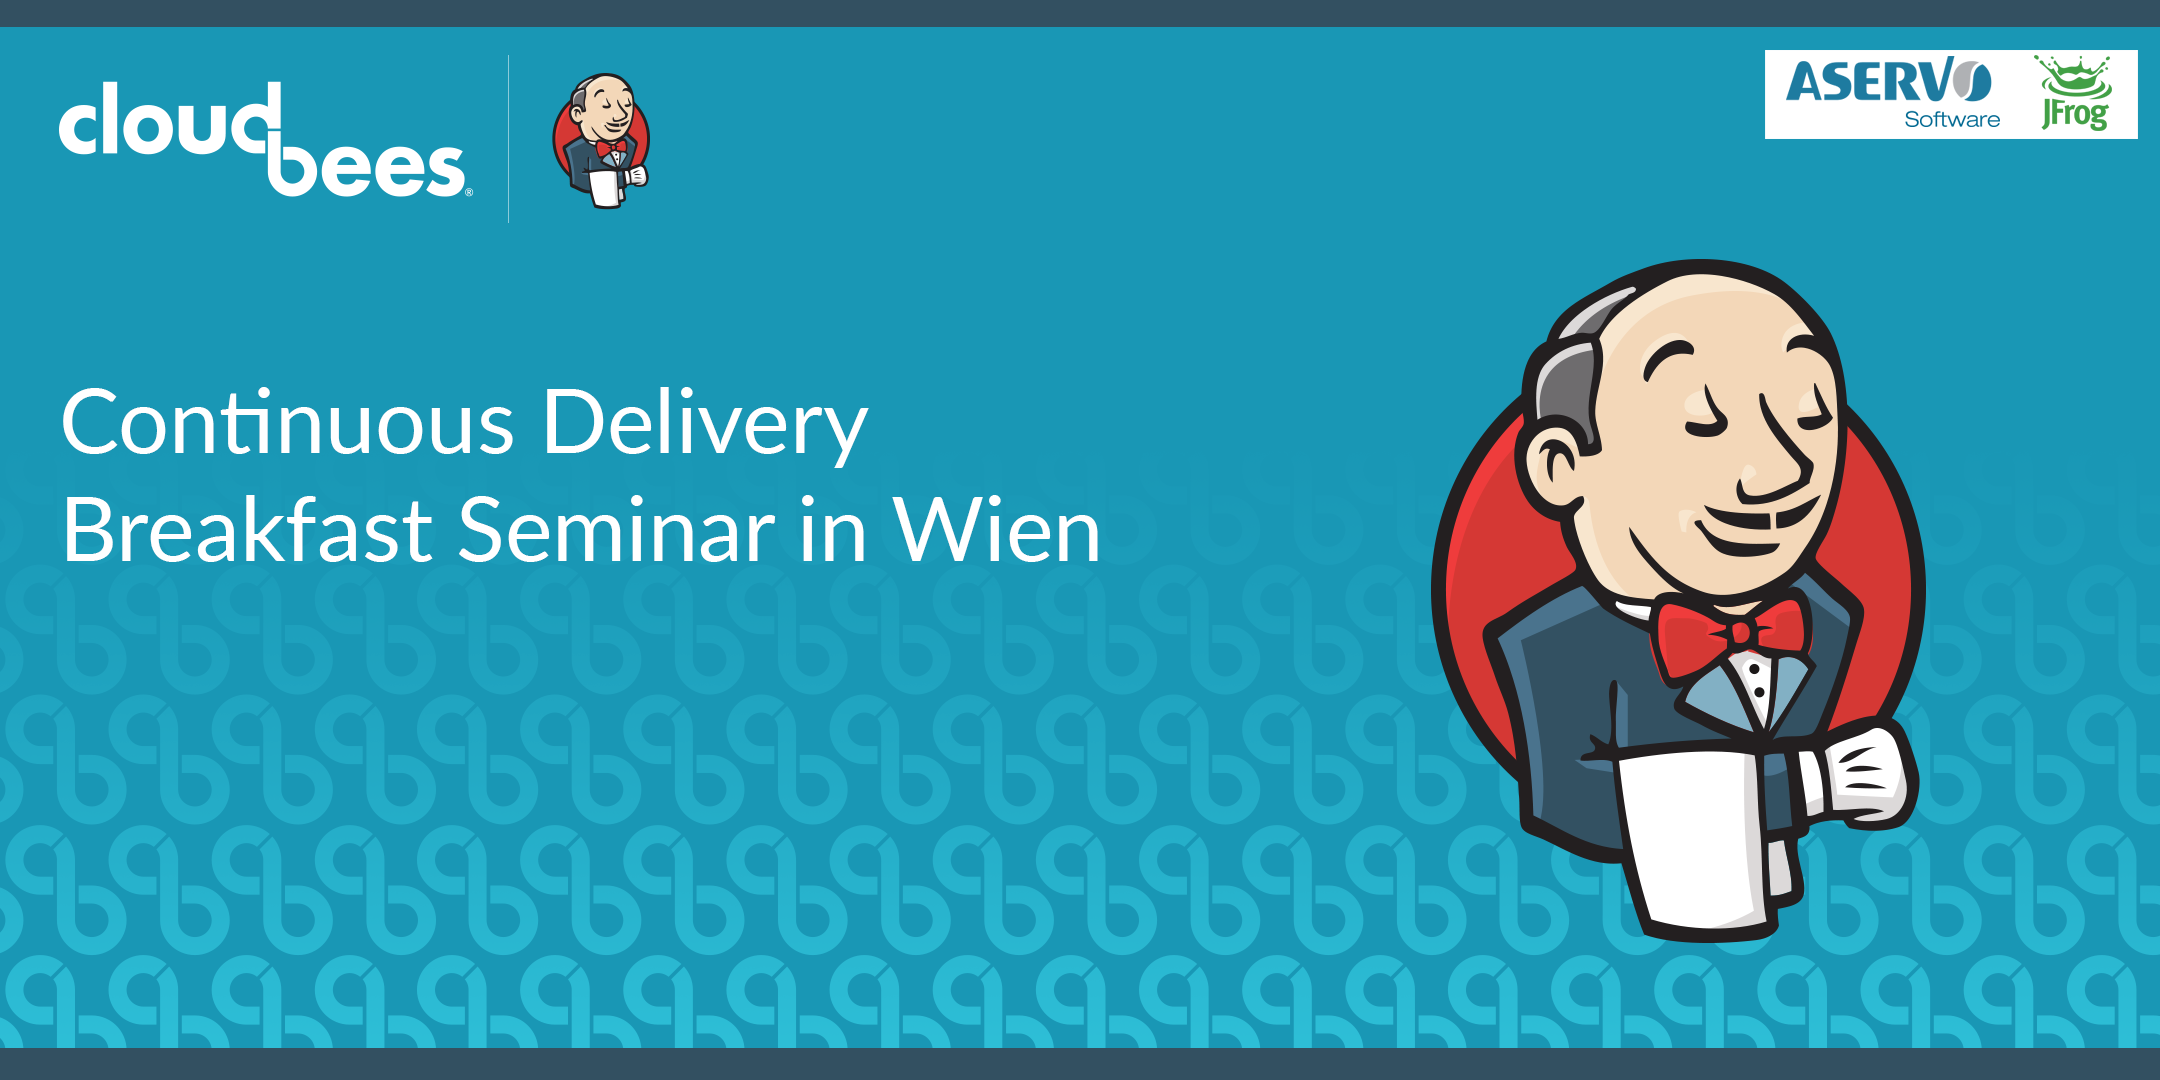 CloudBees Continuous Delivery Breakfast Seminar in Wien